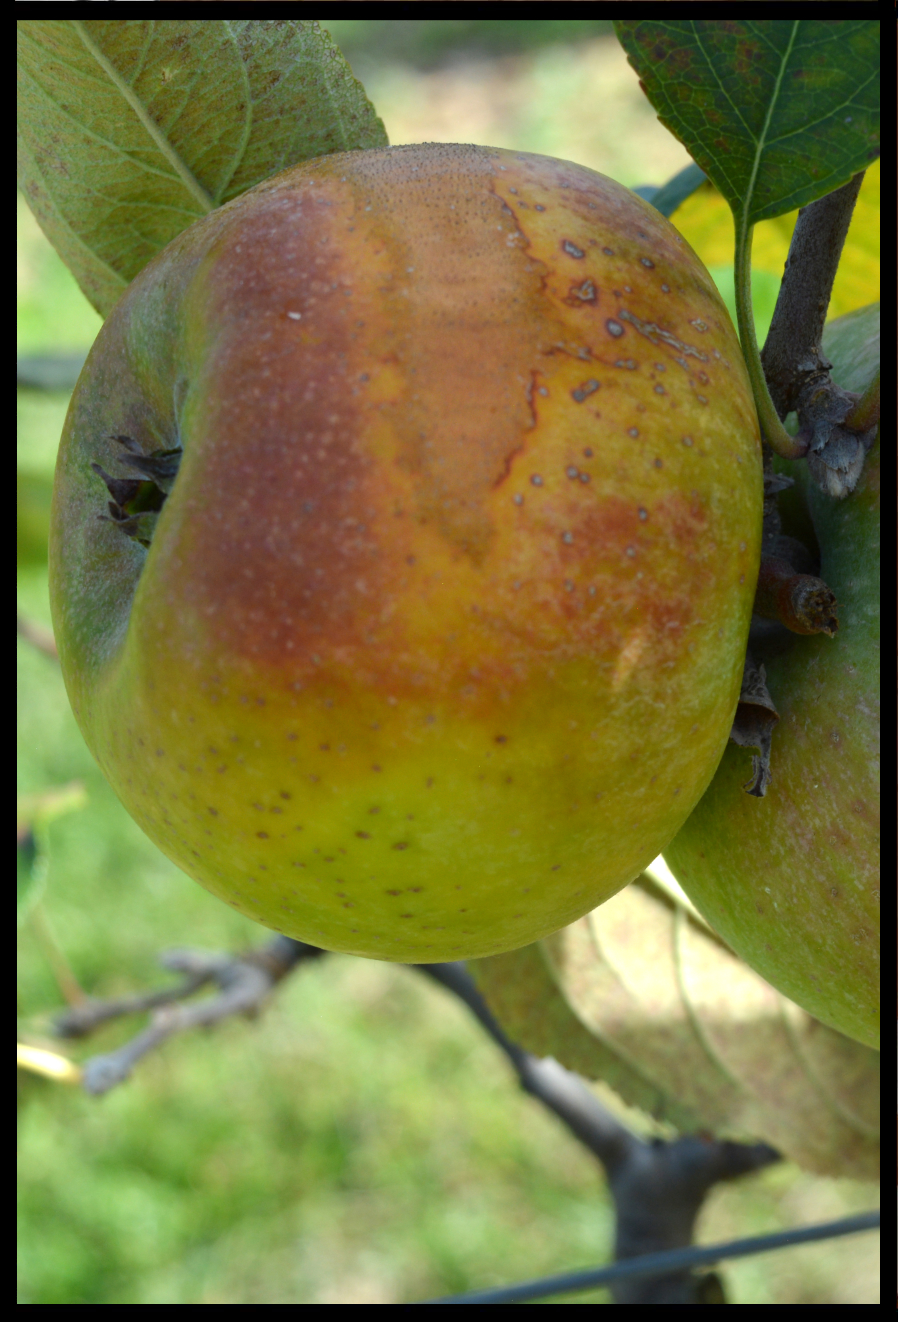 yellow apple with red and rough tan blush and splotches